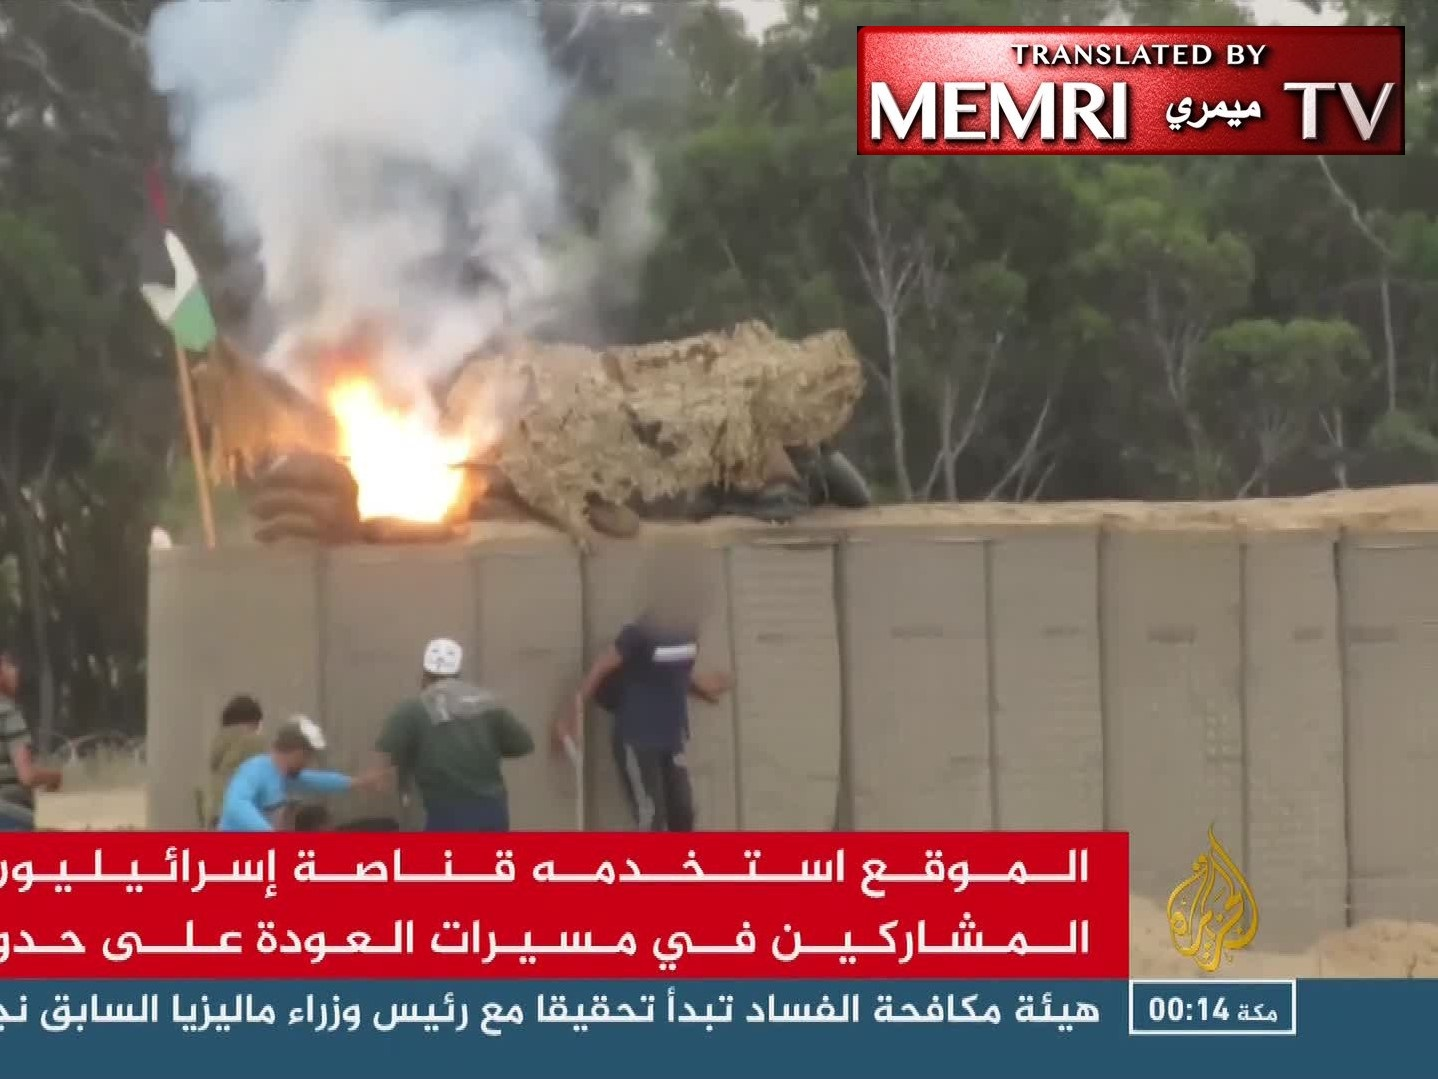 Al-Jazeera Footage of Gazan Youth Breaching Israel's Border, Torching Military Post - Scenes from Gaza